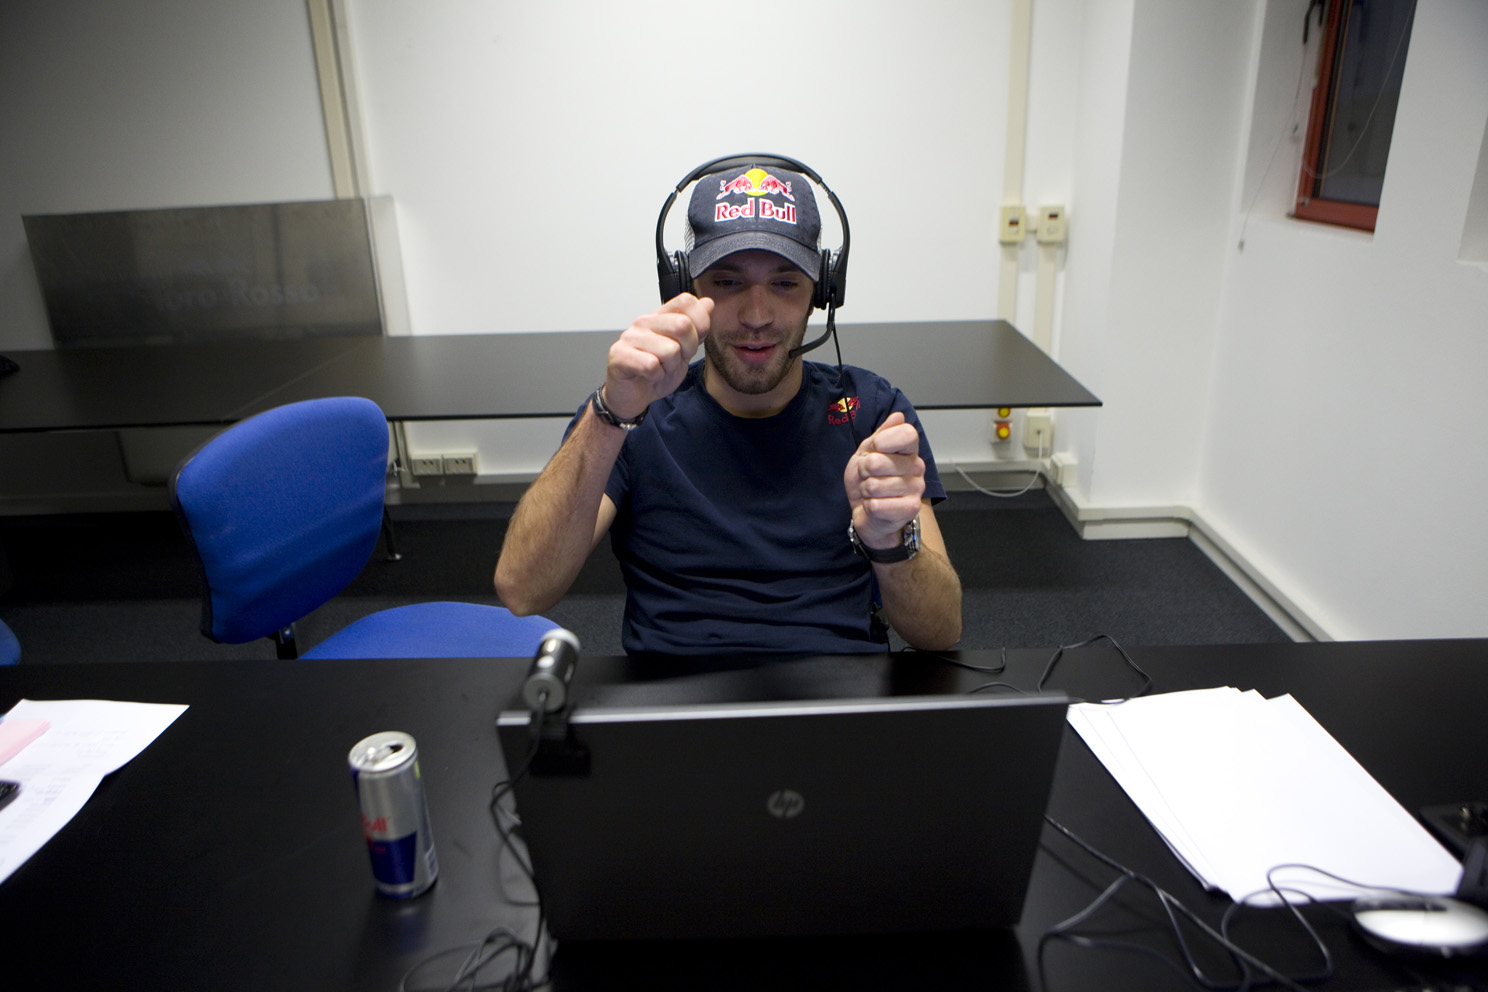 Jean-Eric Vergne takes part in an online interview.